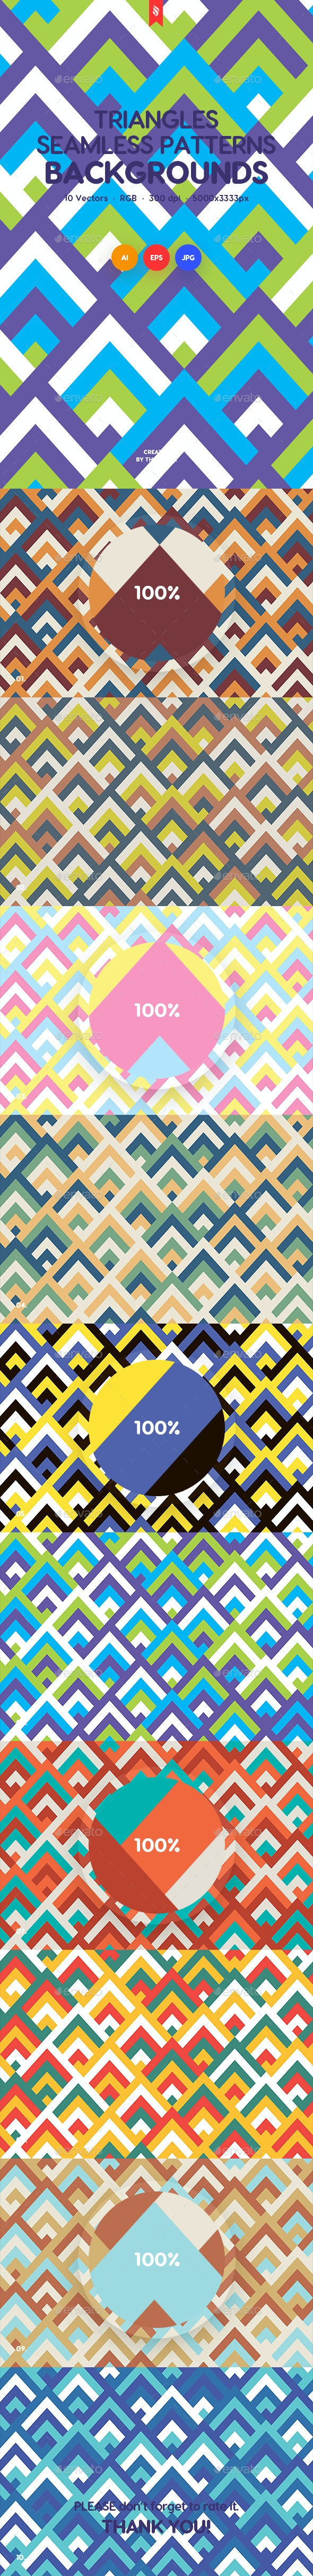 Colored Triangles Seamless Patterns / Backgrounds - Patterns Backgrounds